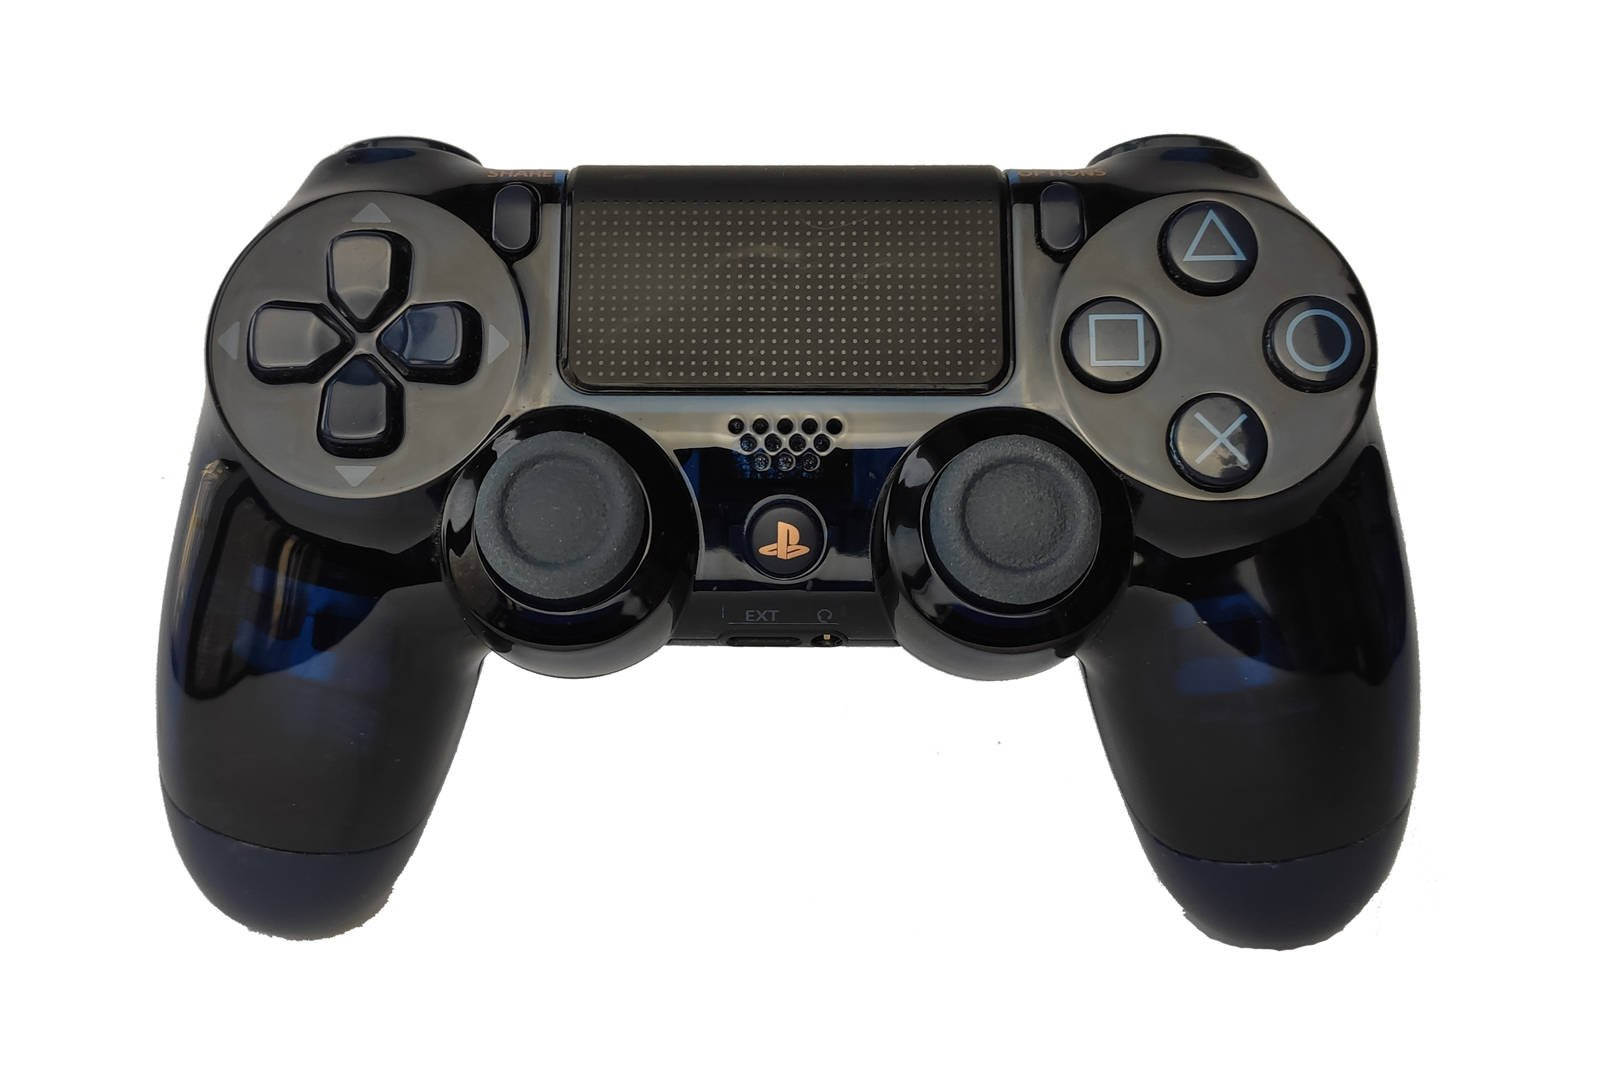 Controller Gamepad Playstation 4 PS4 v2 500 Million Limited Edition